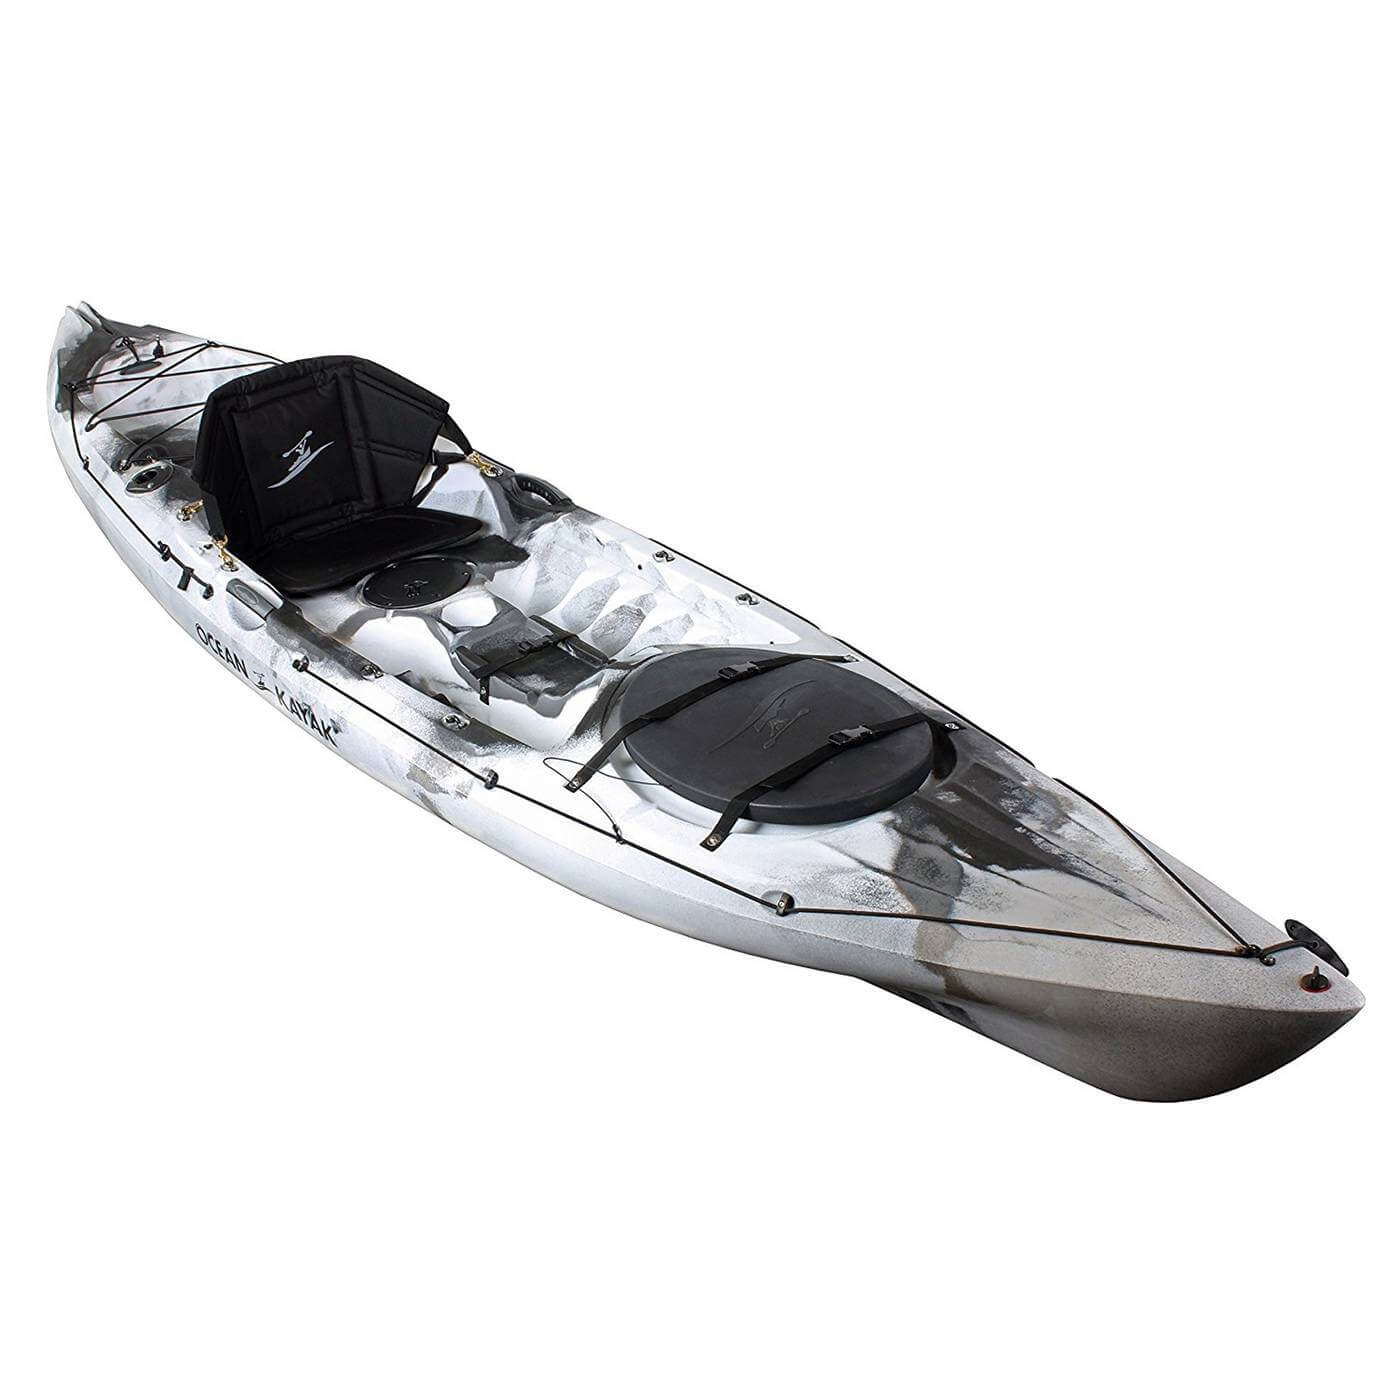 Ocean Kayak Prowler fishing kayak